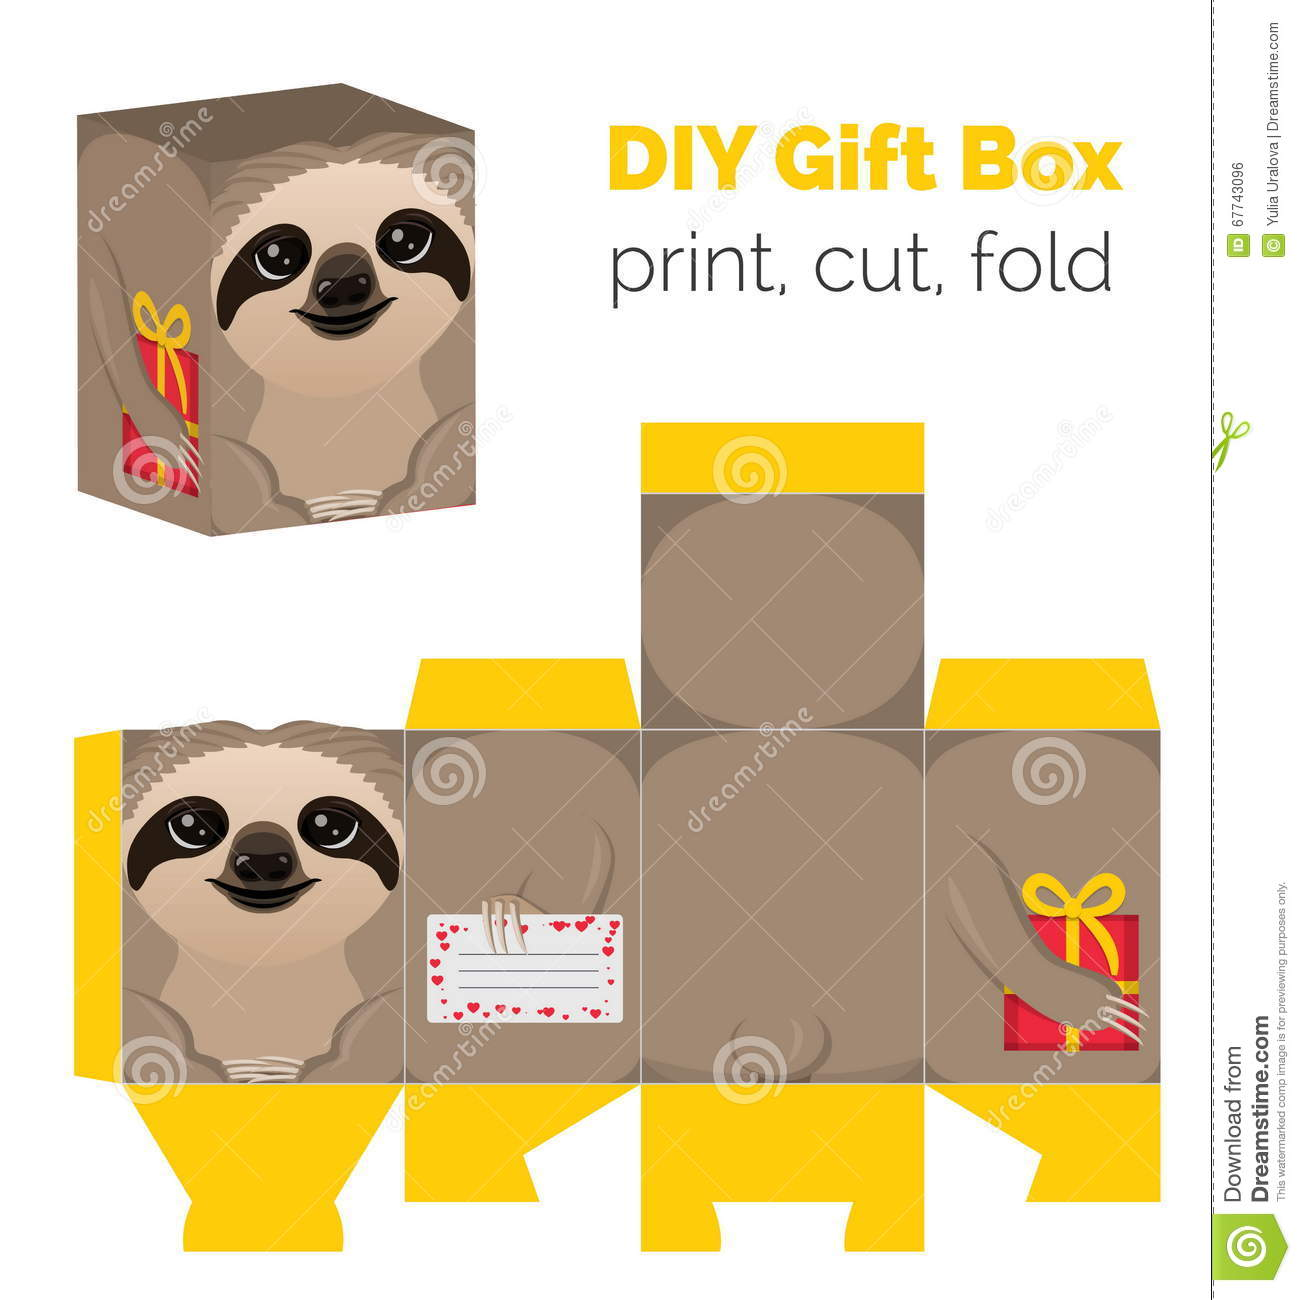 Adorable do it yourself sloth gift box for sweets candies small download adorable do it yourself sloth gift box for sweets candies small presents solutioingenieria Gallery